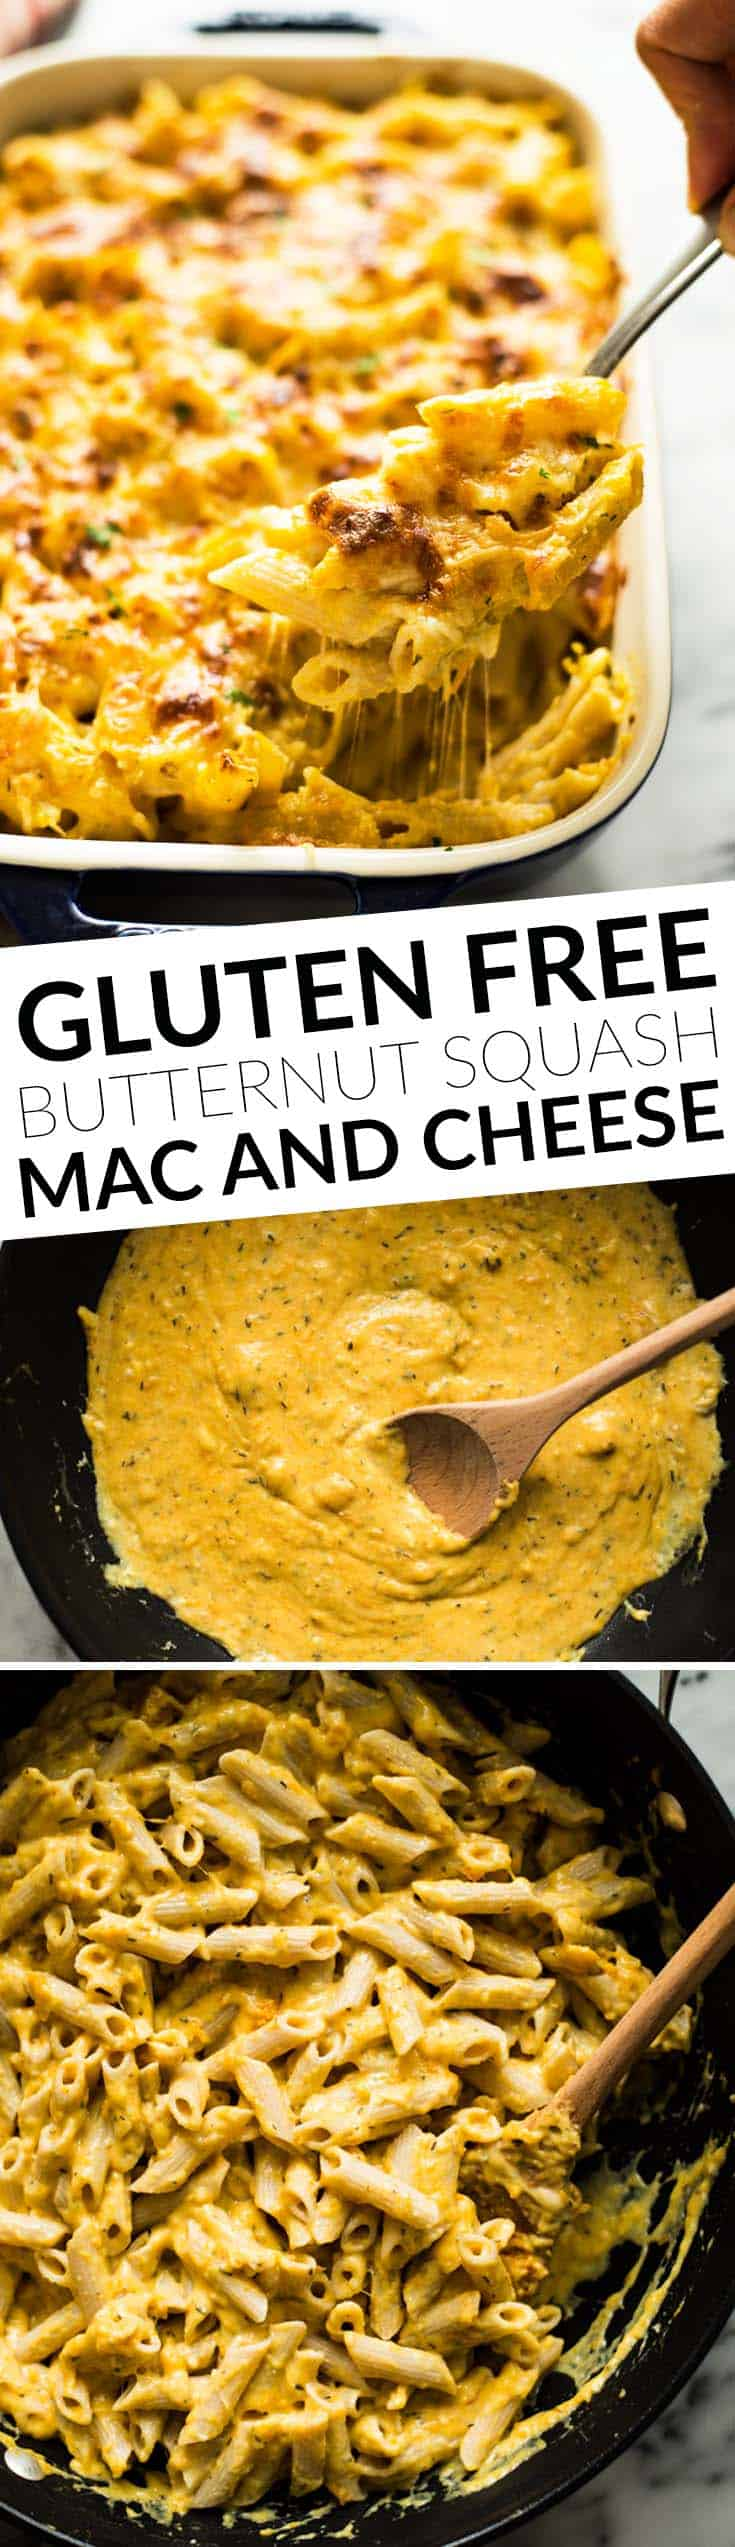 Butternut Squash Baked Mac and Cheese - gluten free and healthier version!